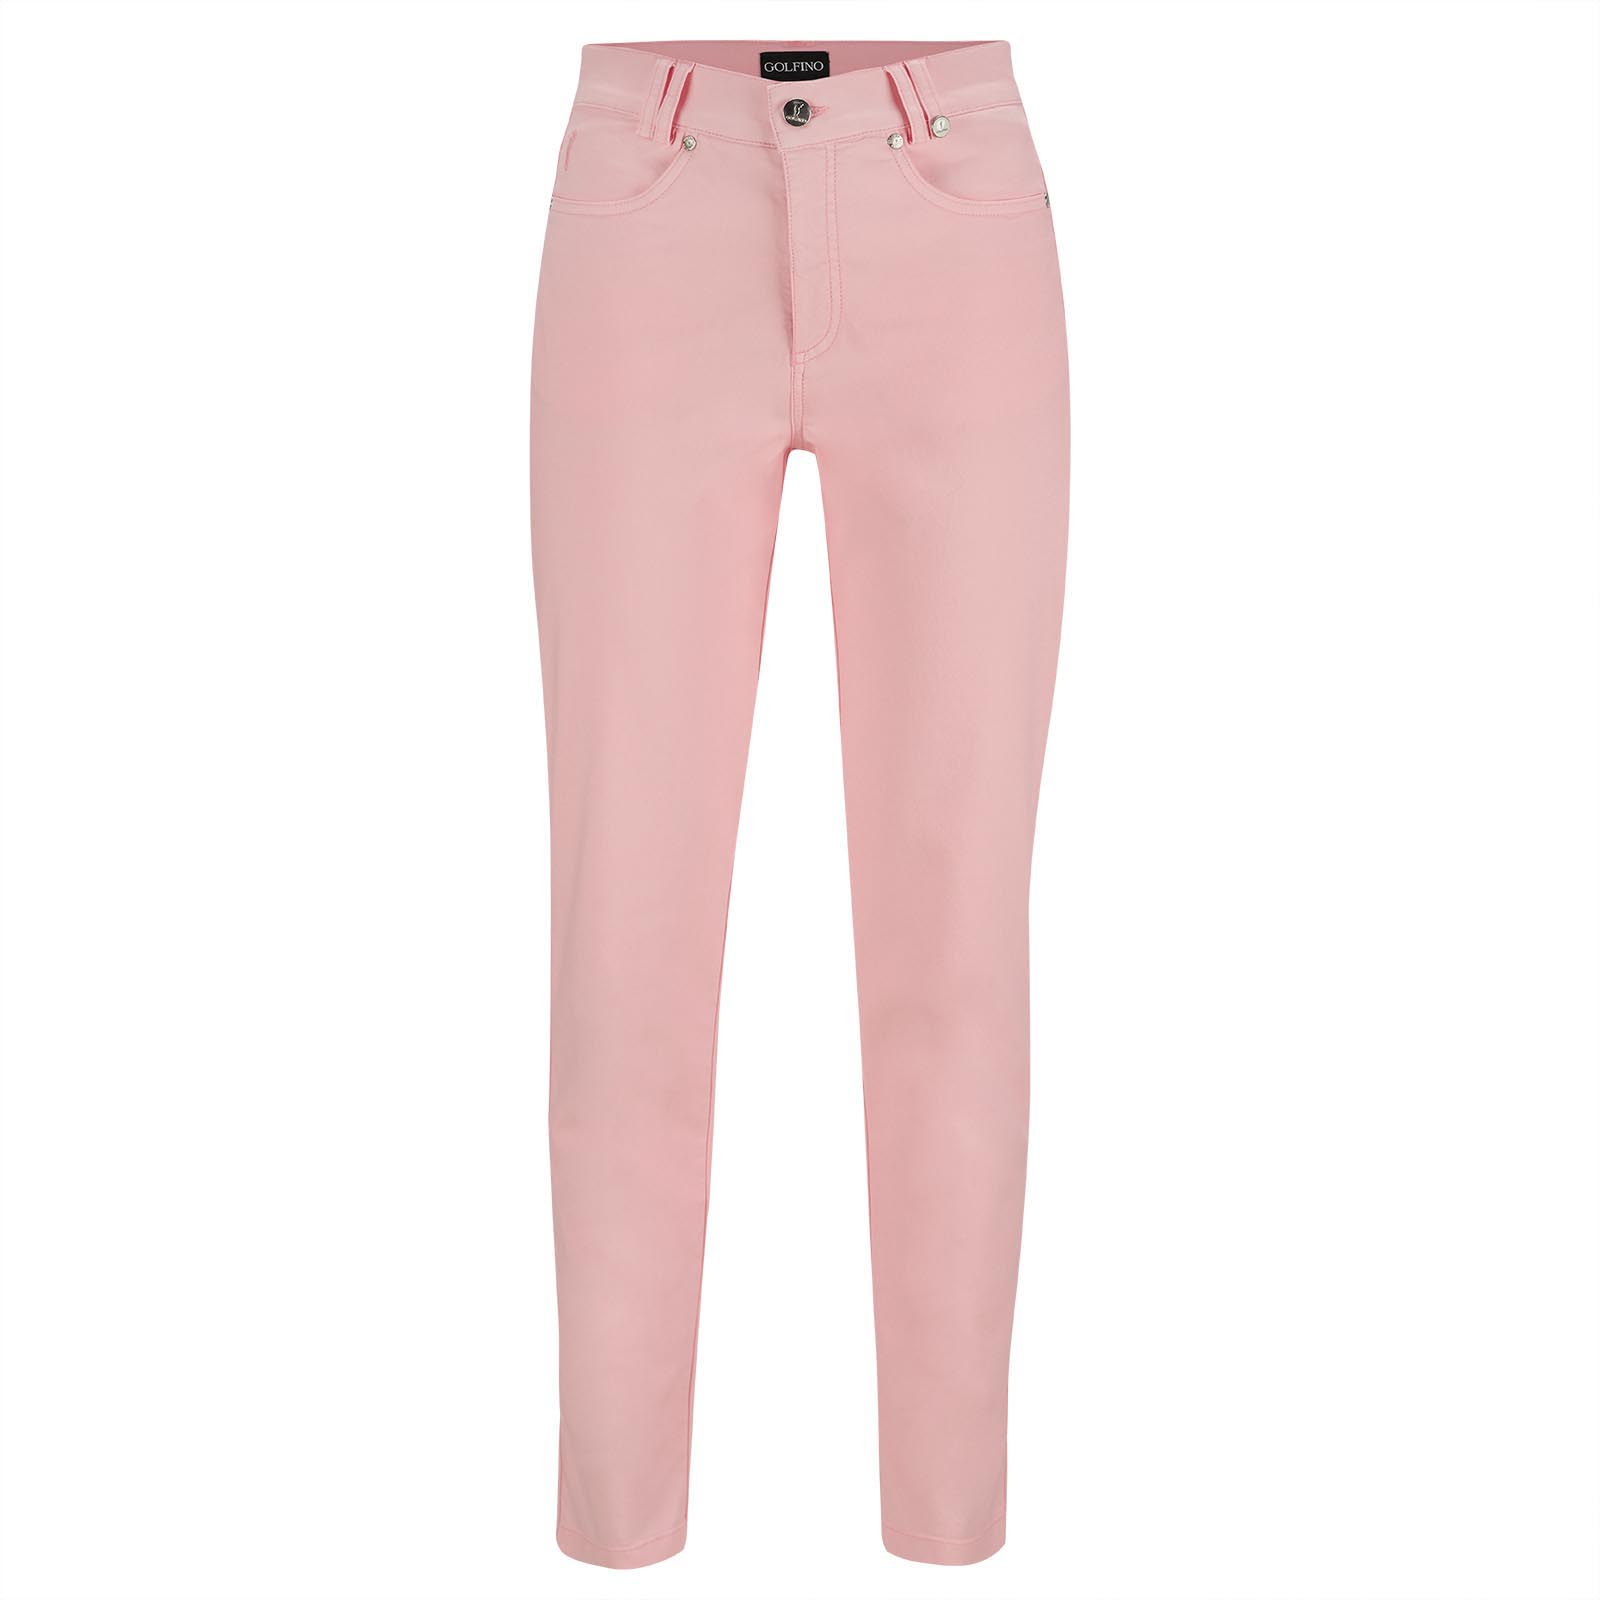 Cotton Blend Ladies' 7/8 golf trousers with excellent stretch properties